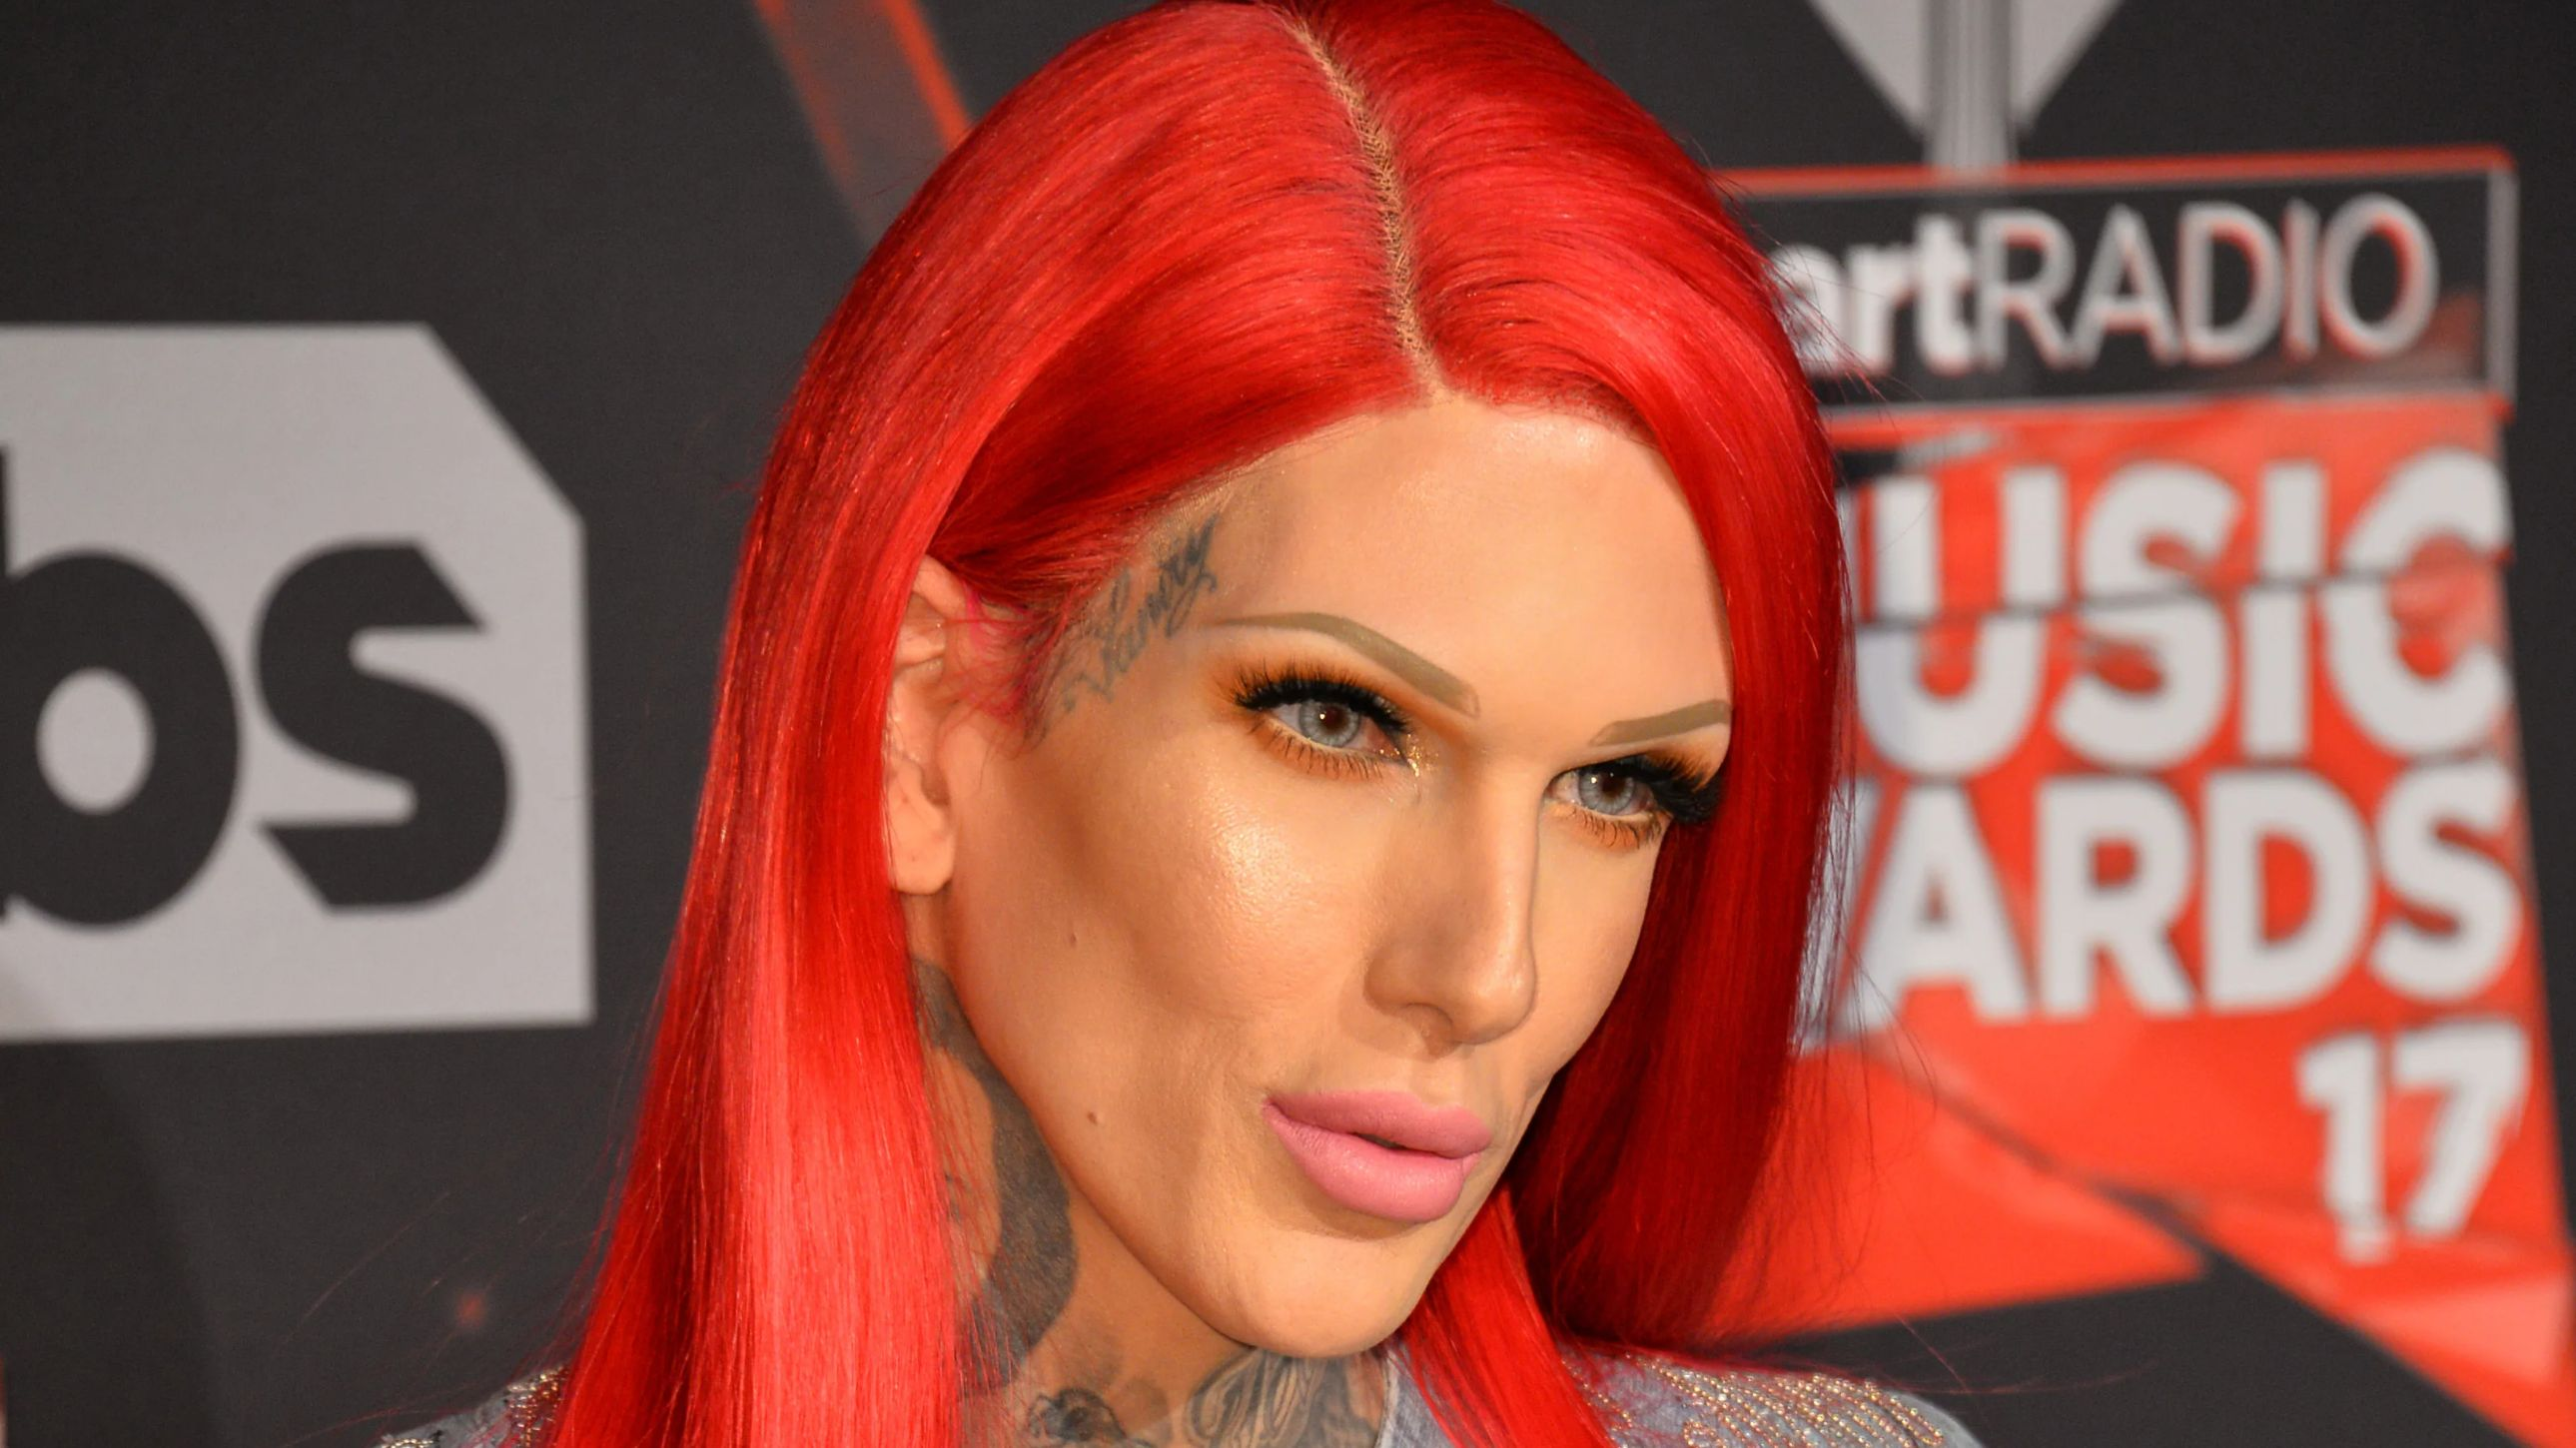 Jeffree Star in a red wig